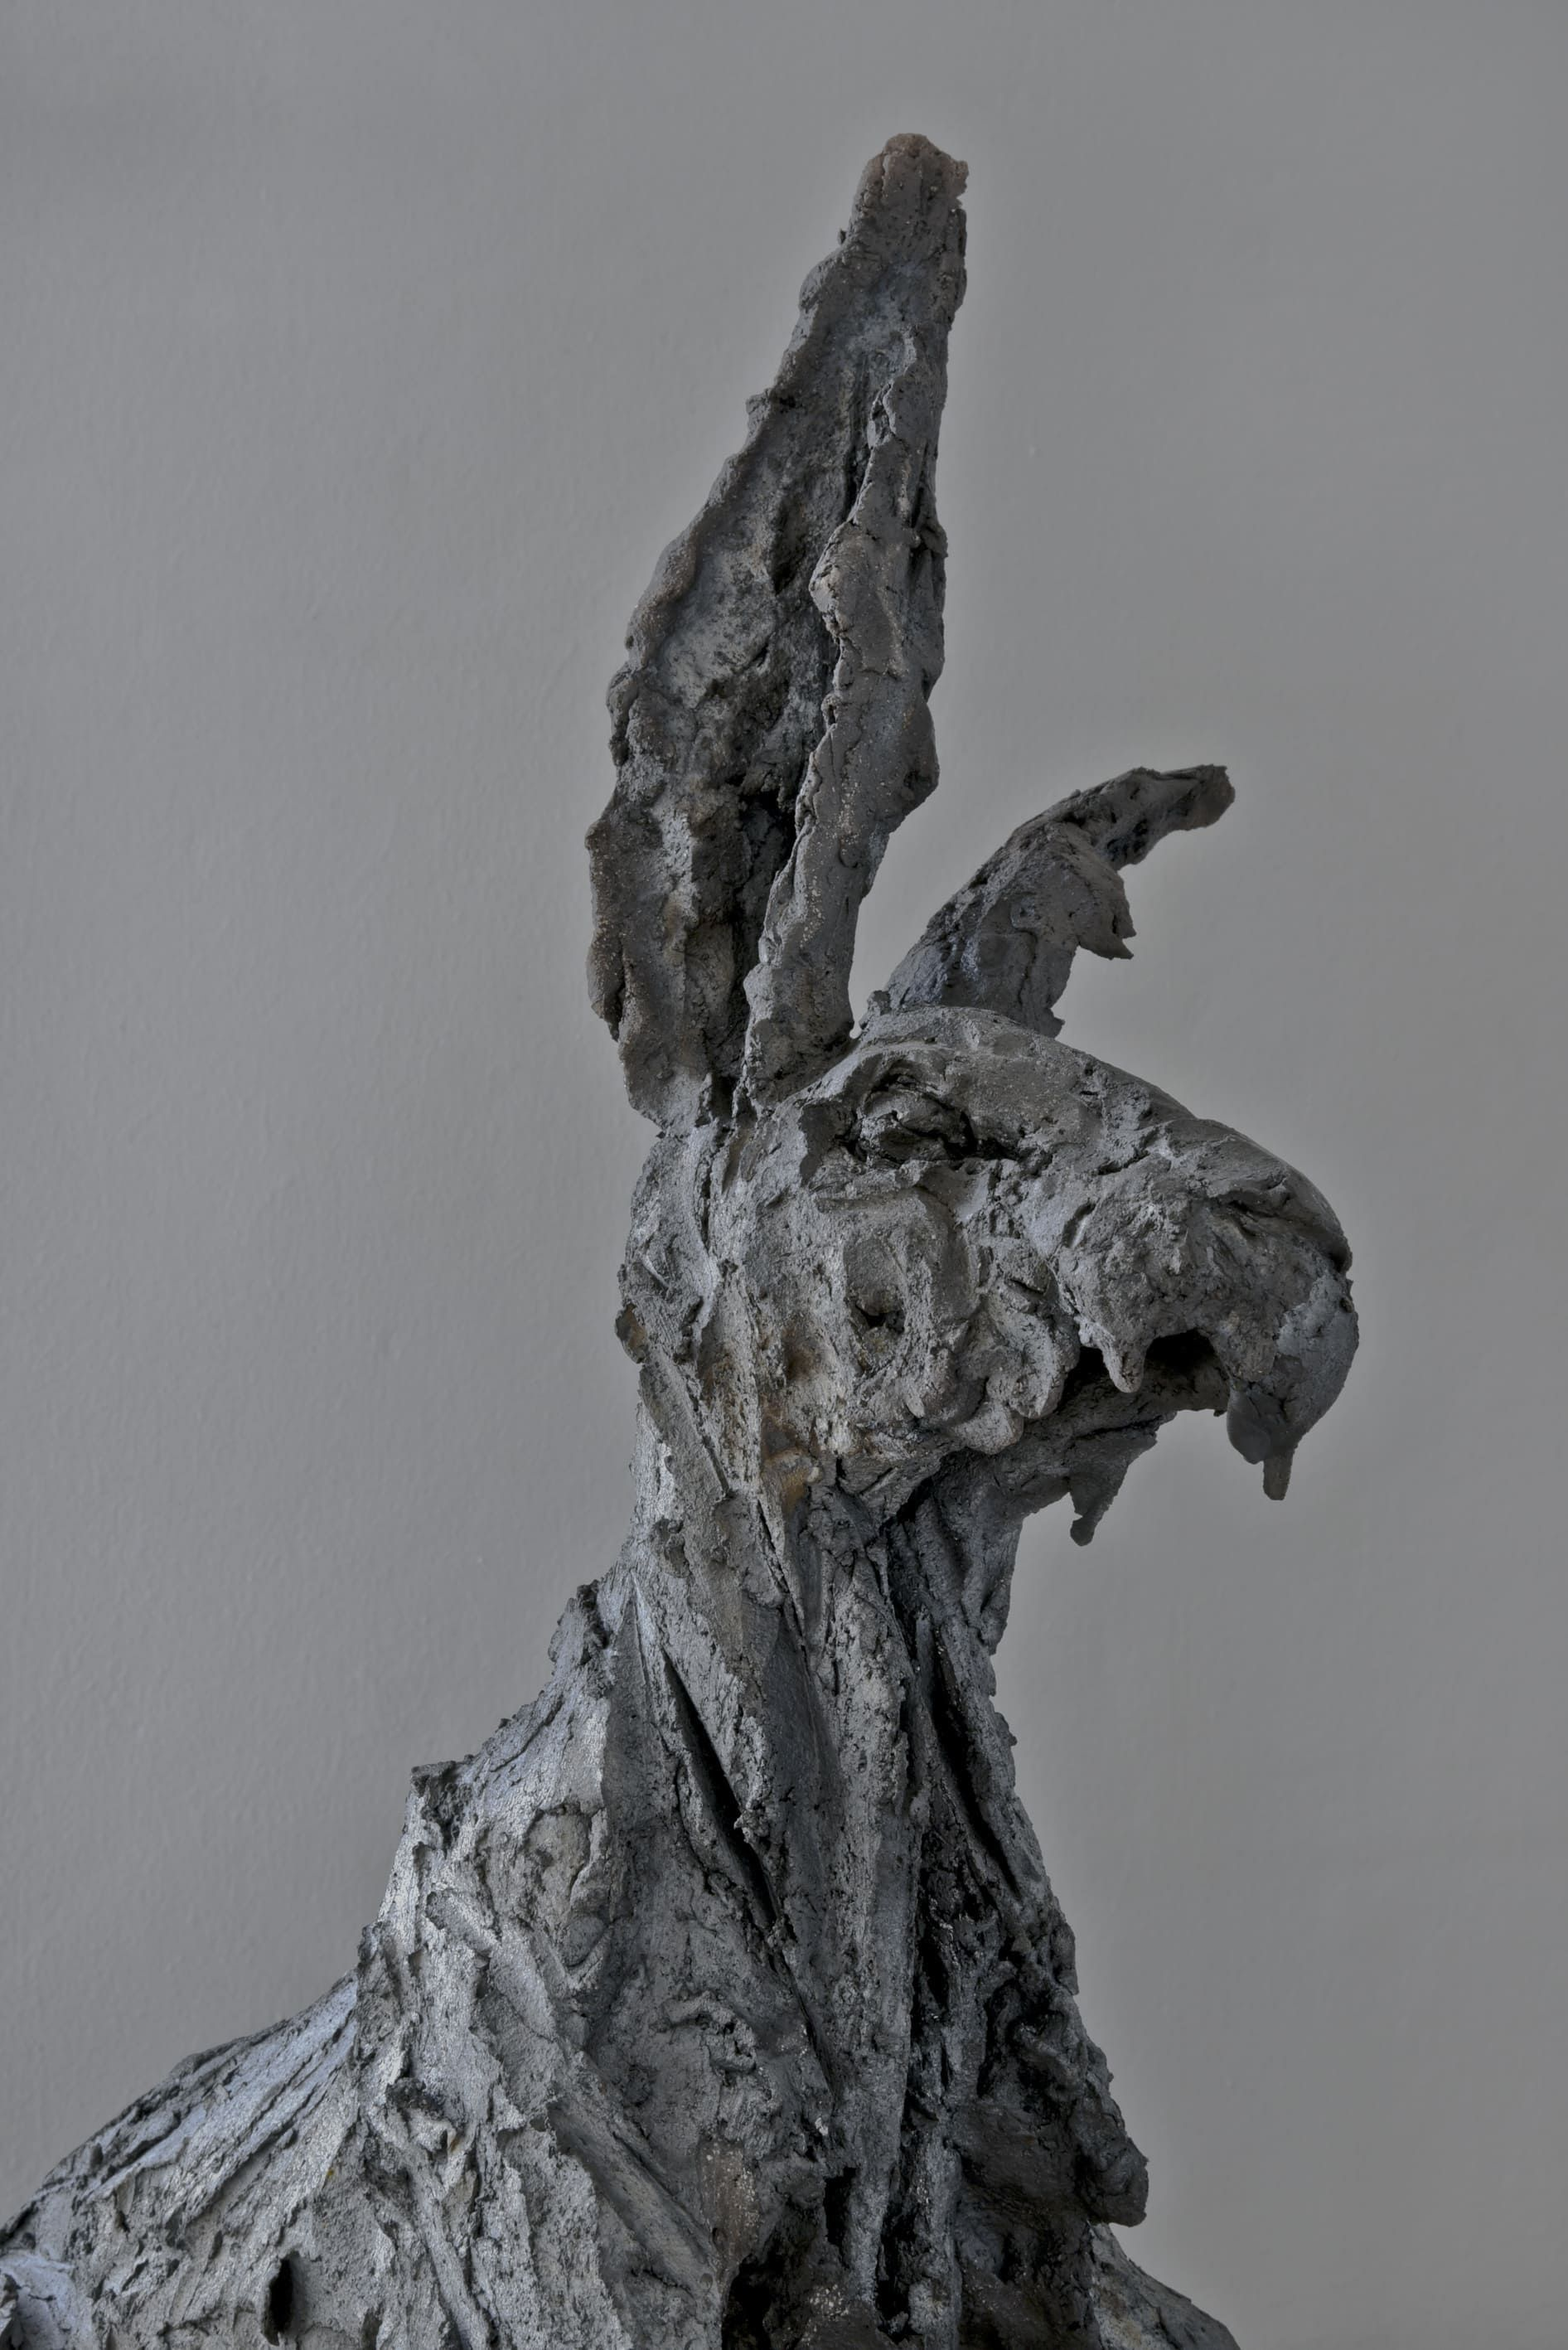 Peau d'Hase,Cécile Raynal,Sculpture contemporaine, detail 1